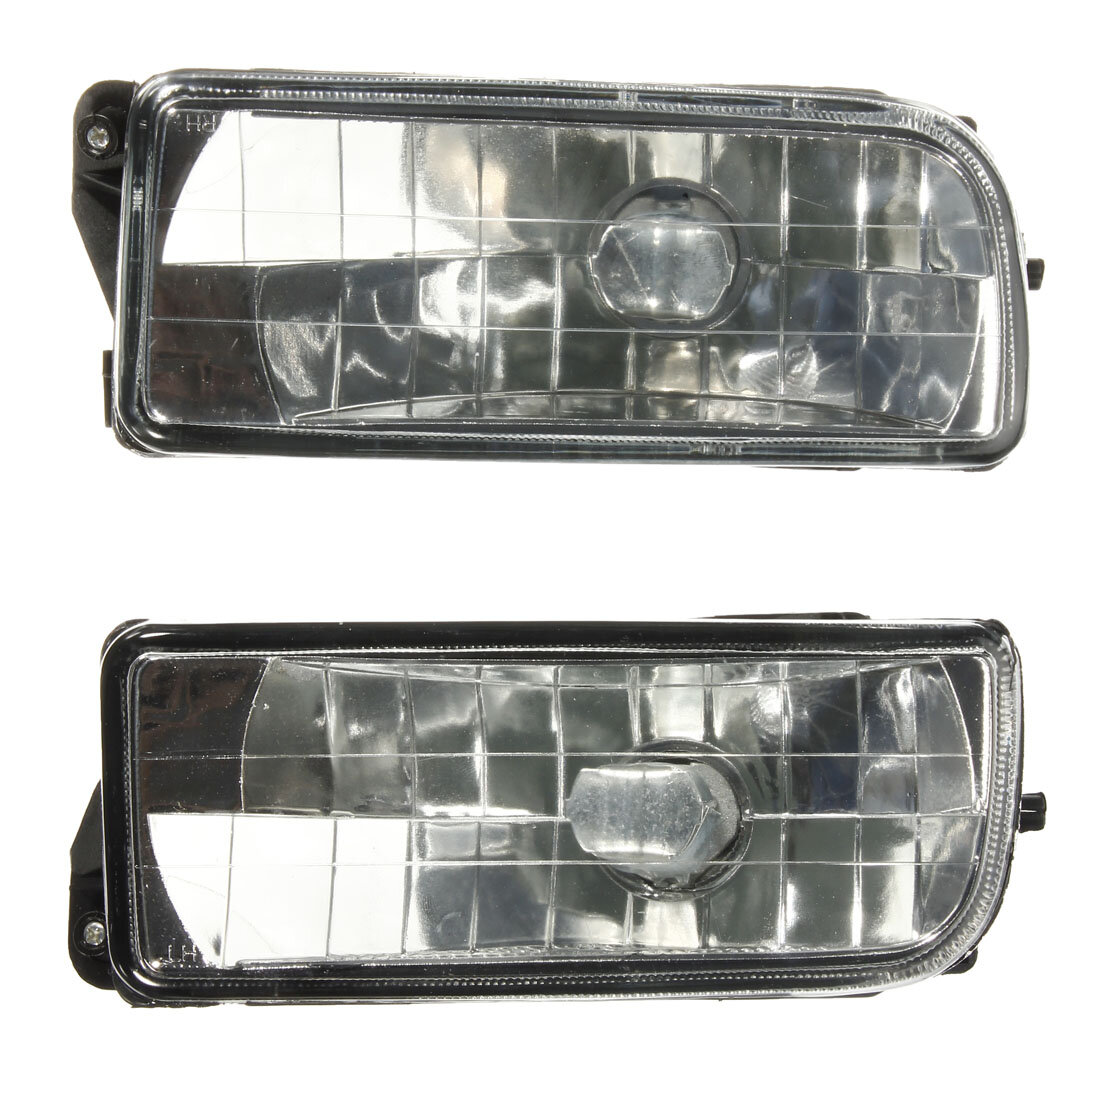 hight resolution of car front bumper fog lights clear glass lens with no bulb for bmw e36 3 series 1992 1998 cod